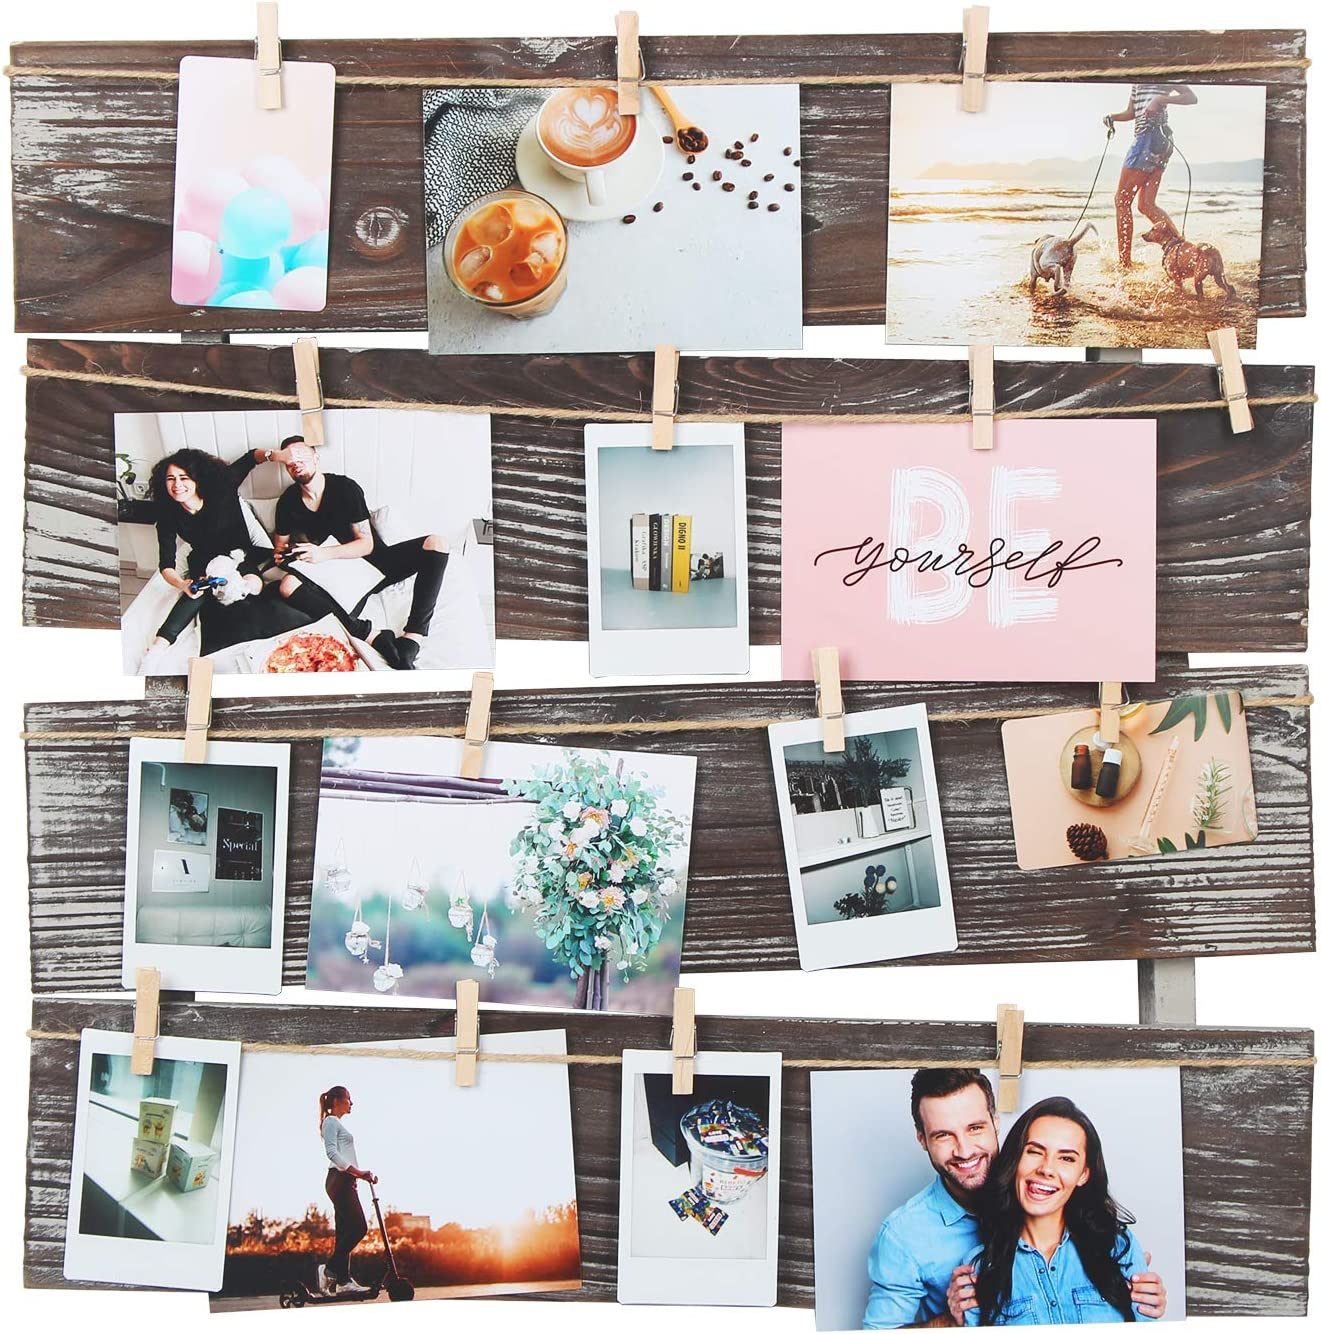 40 pictures Photo collage template 55 20x20 inches